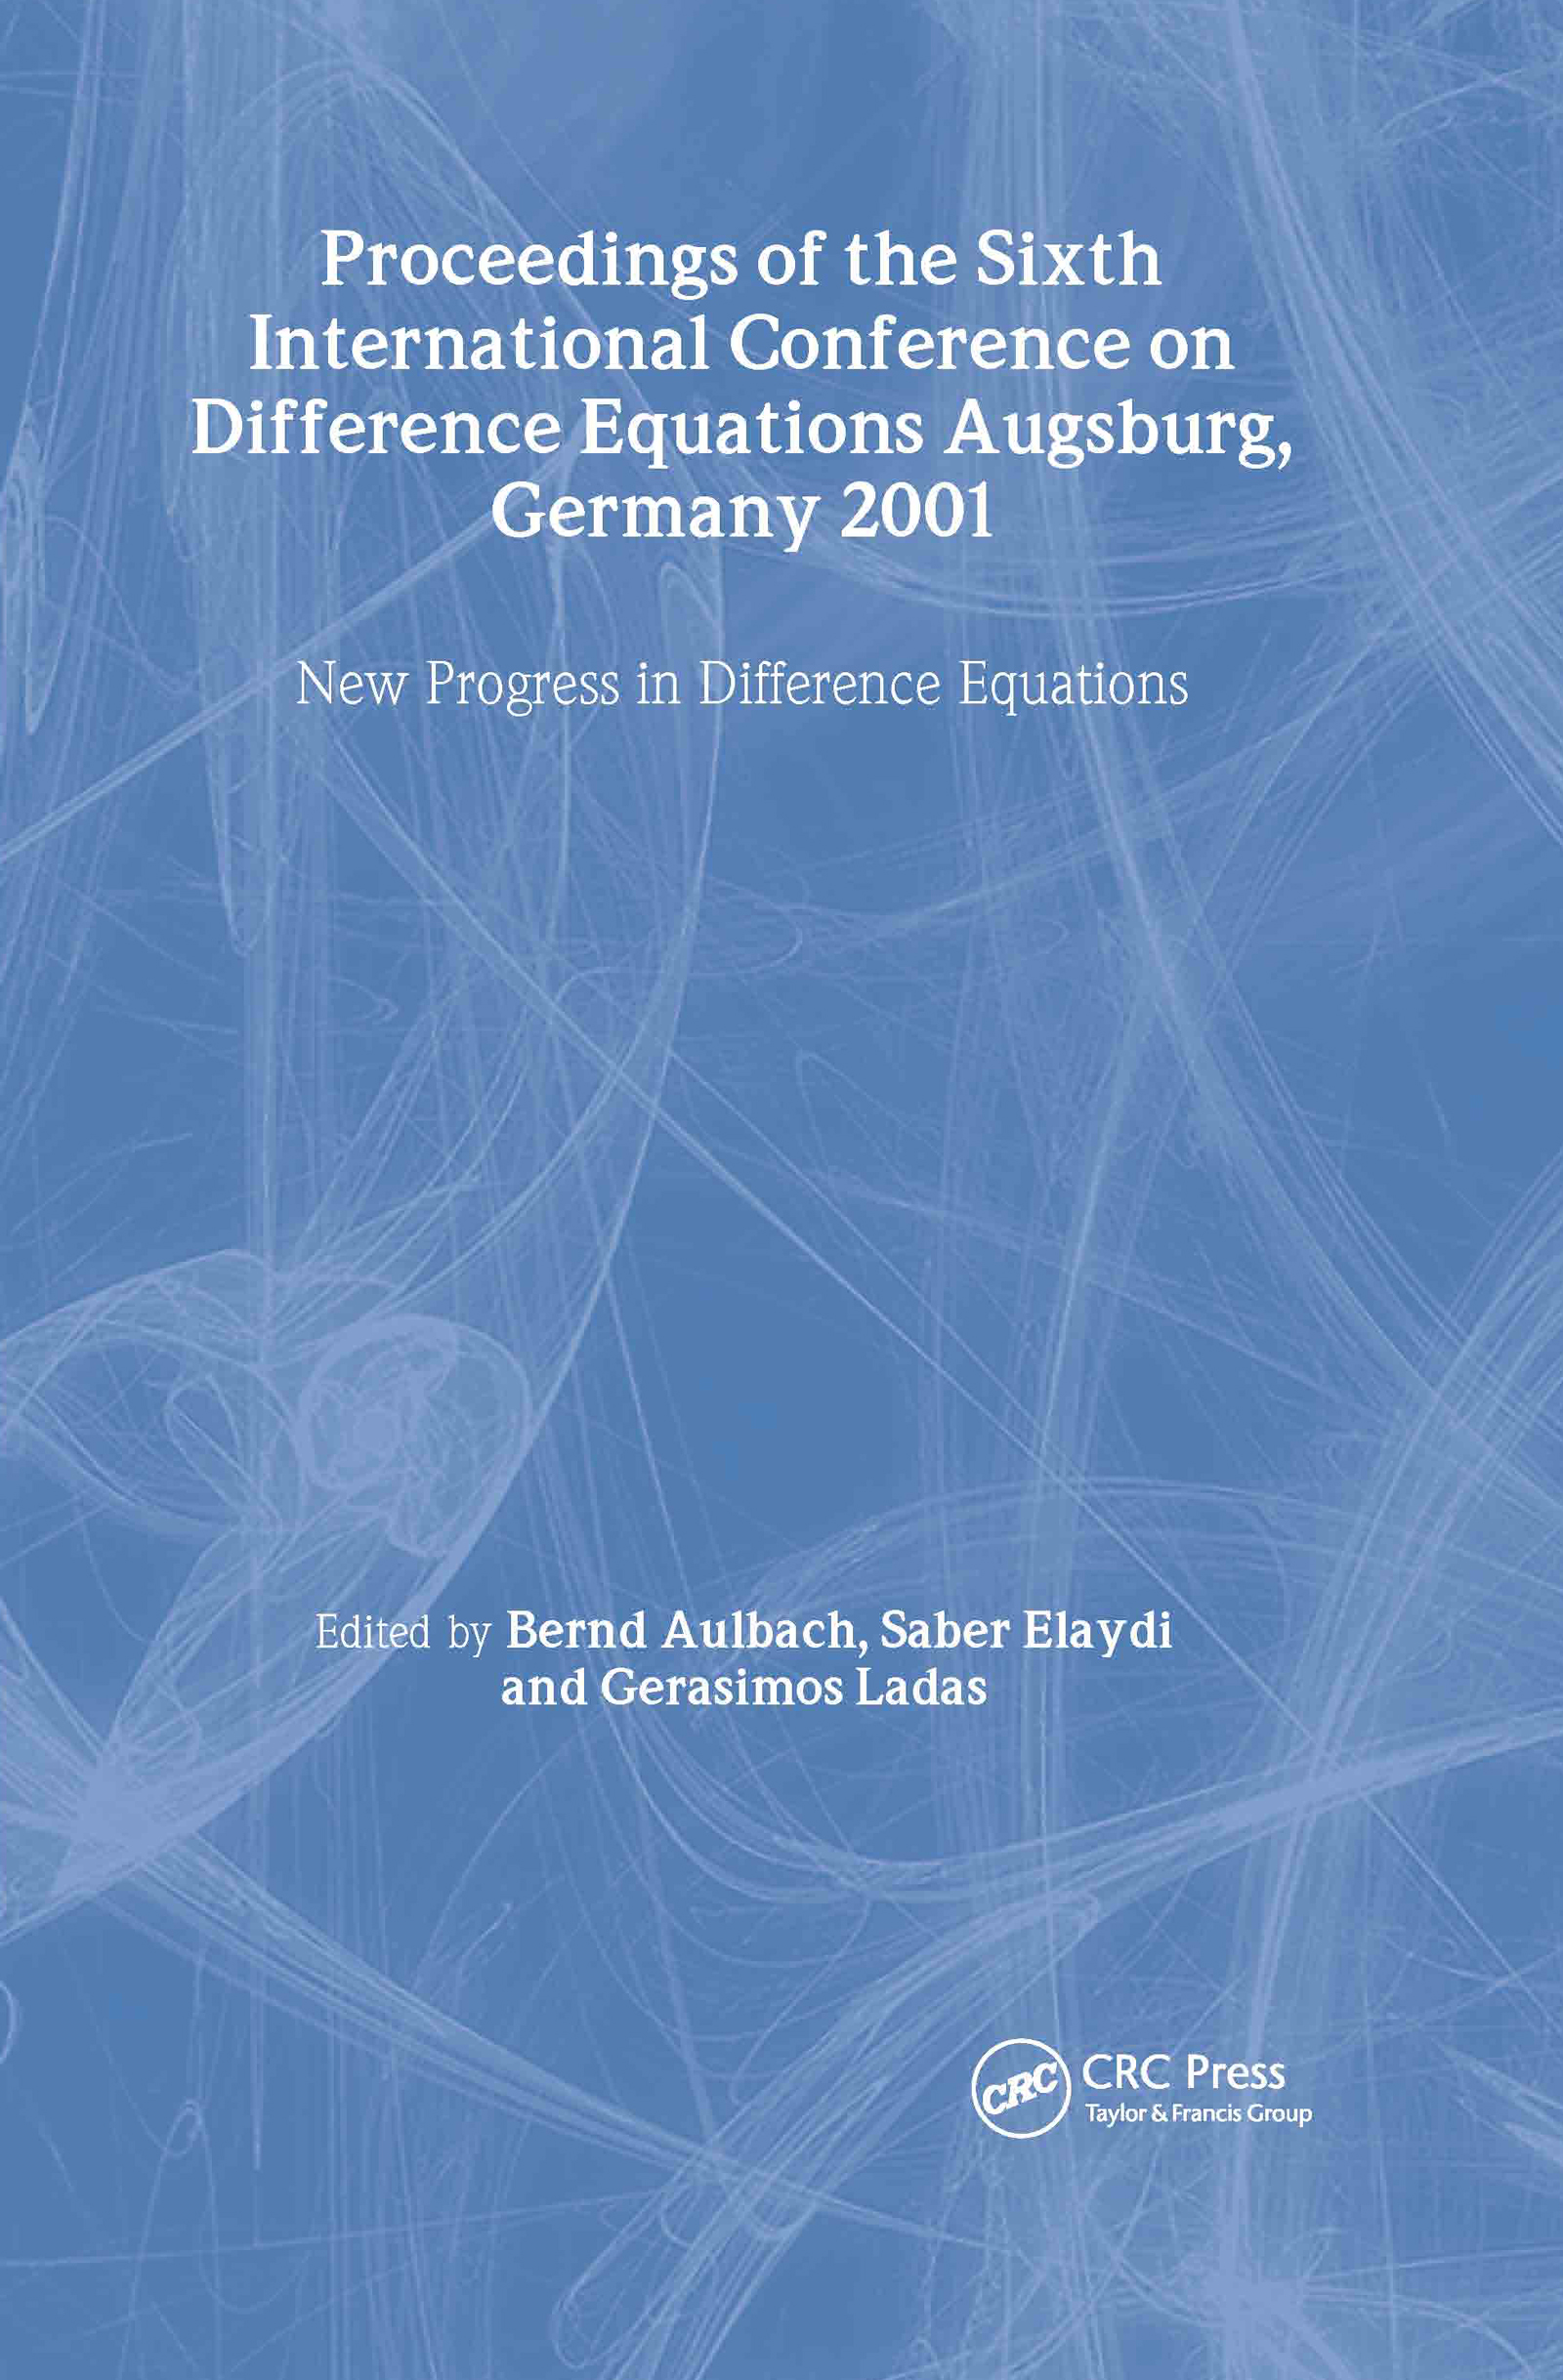 Proceedings of the Sixth International Conference on Difference Equations Augsburg, Germany 2001